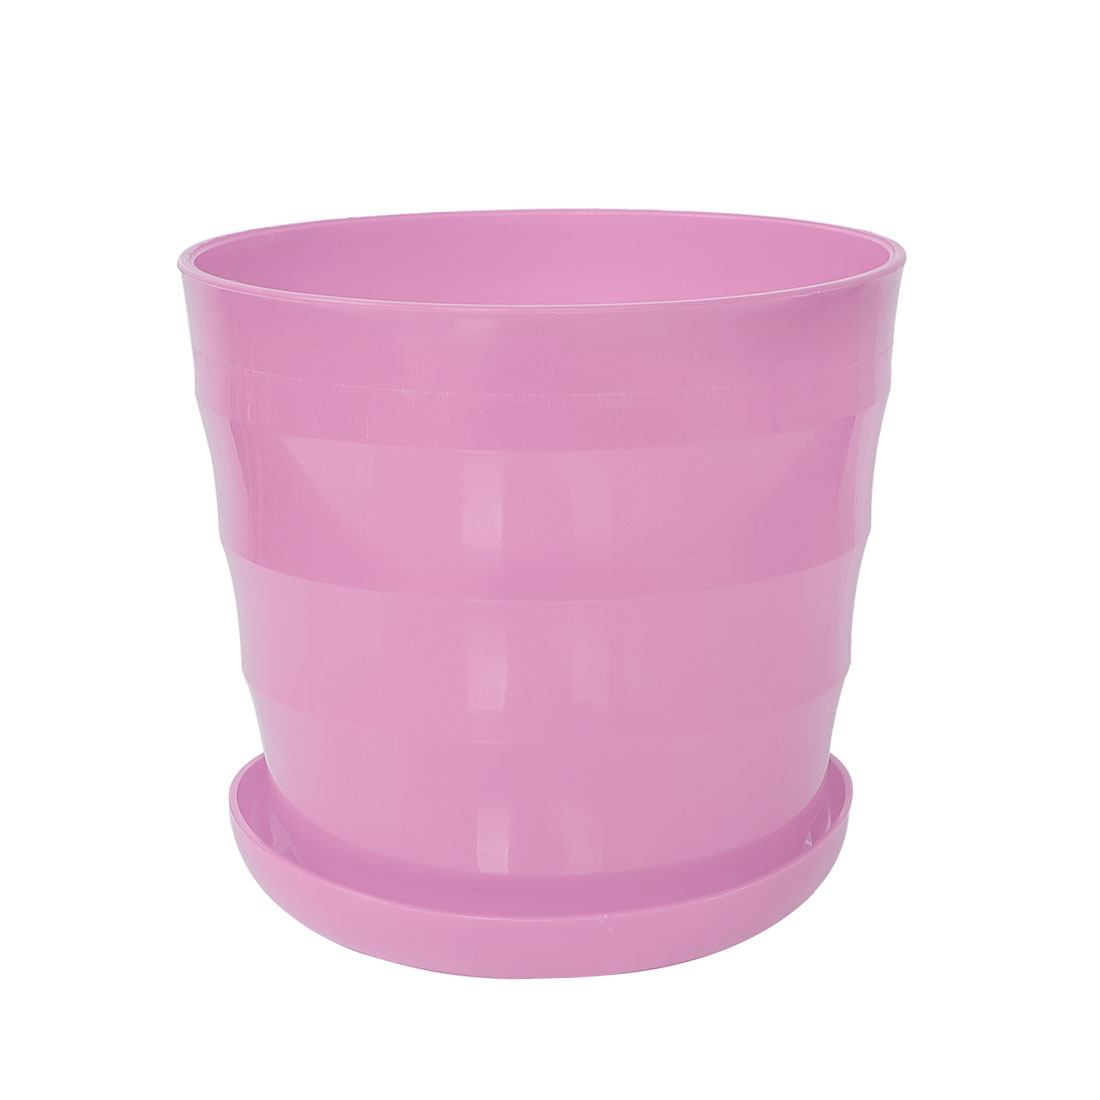 Home Garden Office Plastic Round Plant Planter Flower Pot Ornament Pink